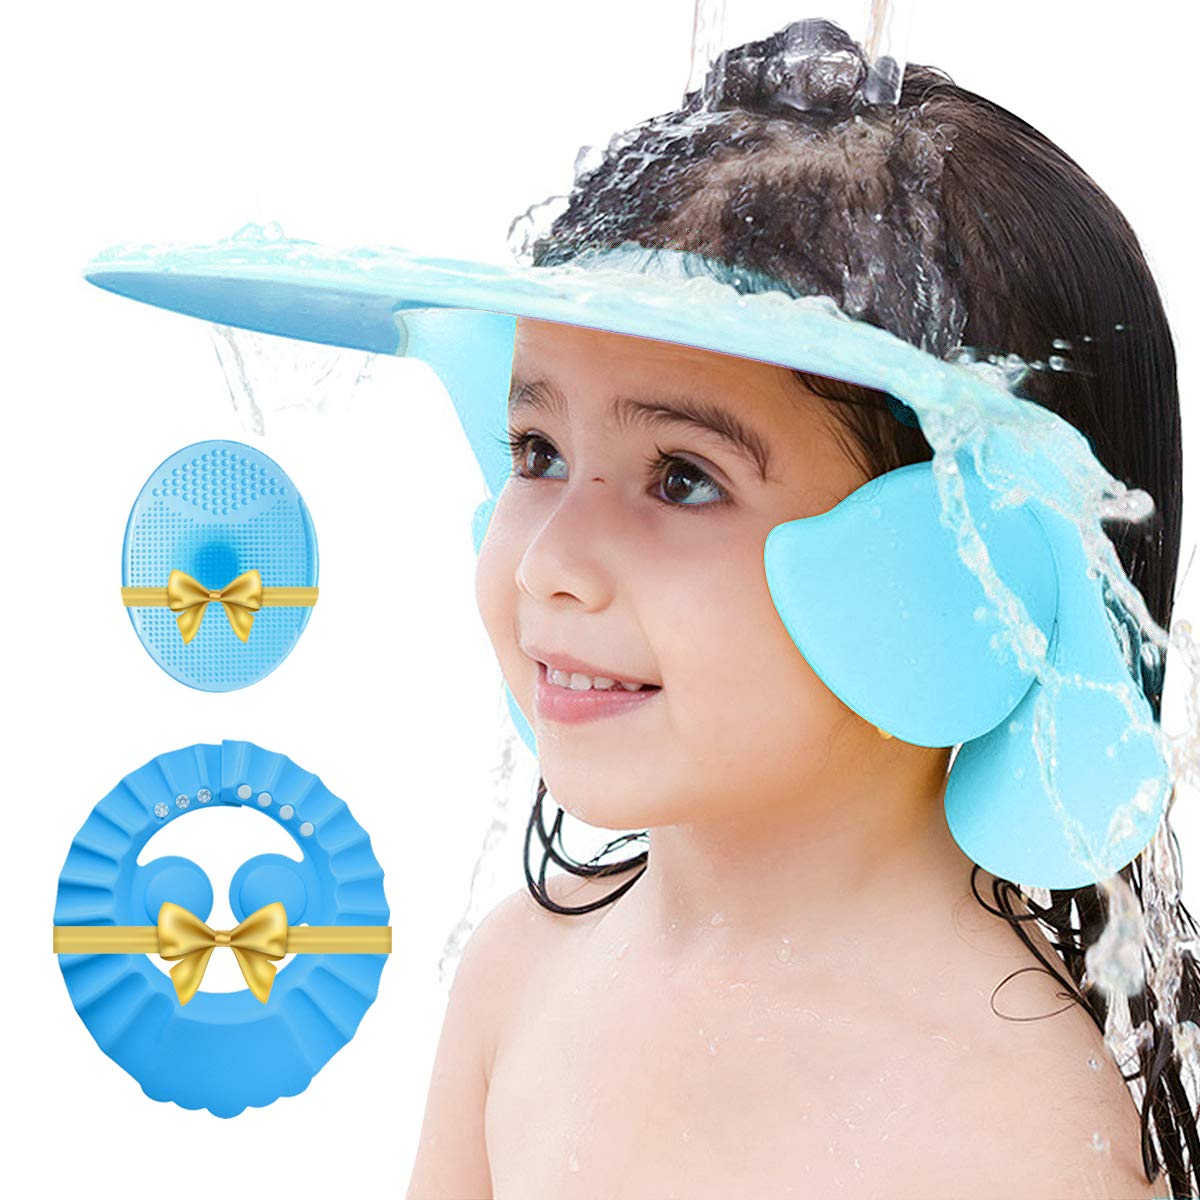 Baby Shower Cap, 3pcs Set Adjustable Silicone Shampoo Bath Cap Safety Visor Bathing Hat and Baby Brush, Protection Bath Cap for Baby Infants Toddlers Kids Children